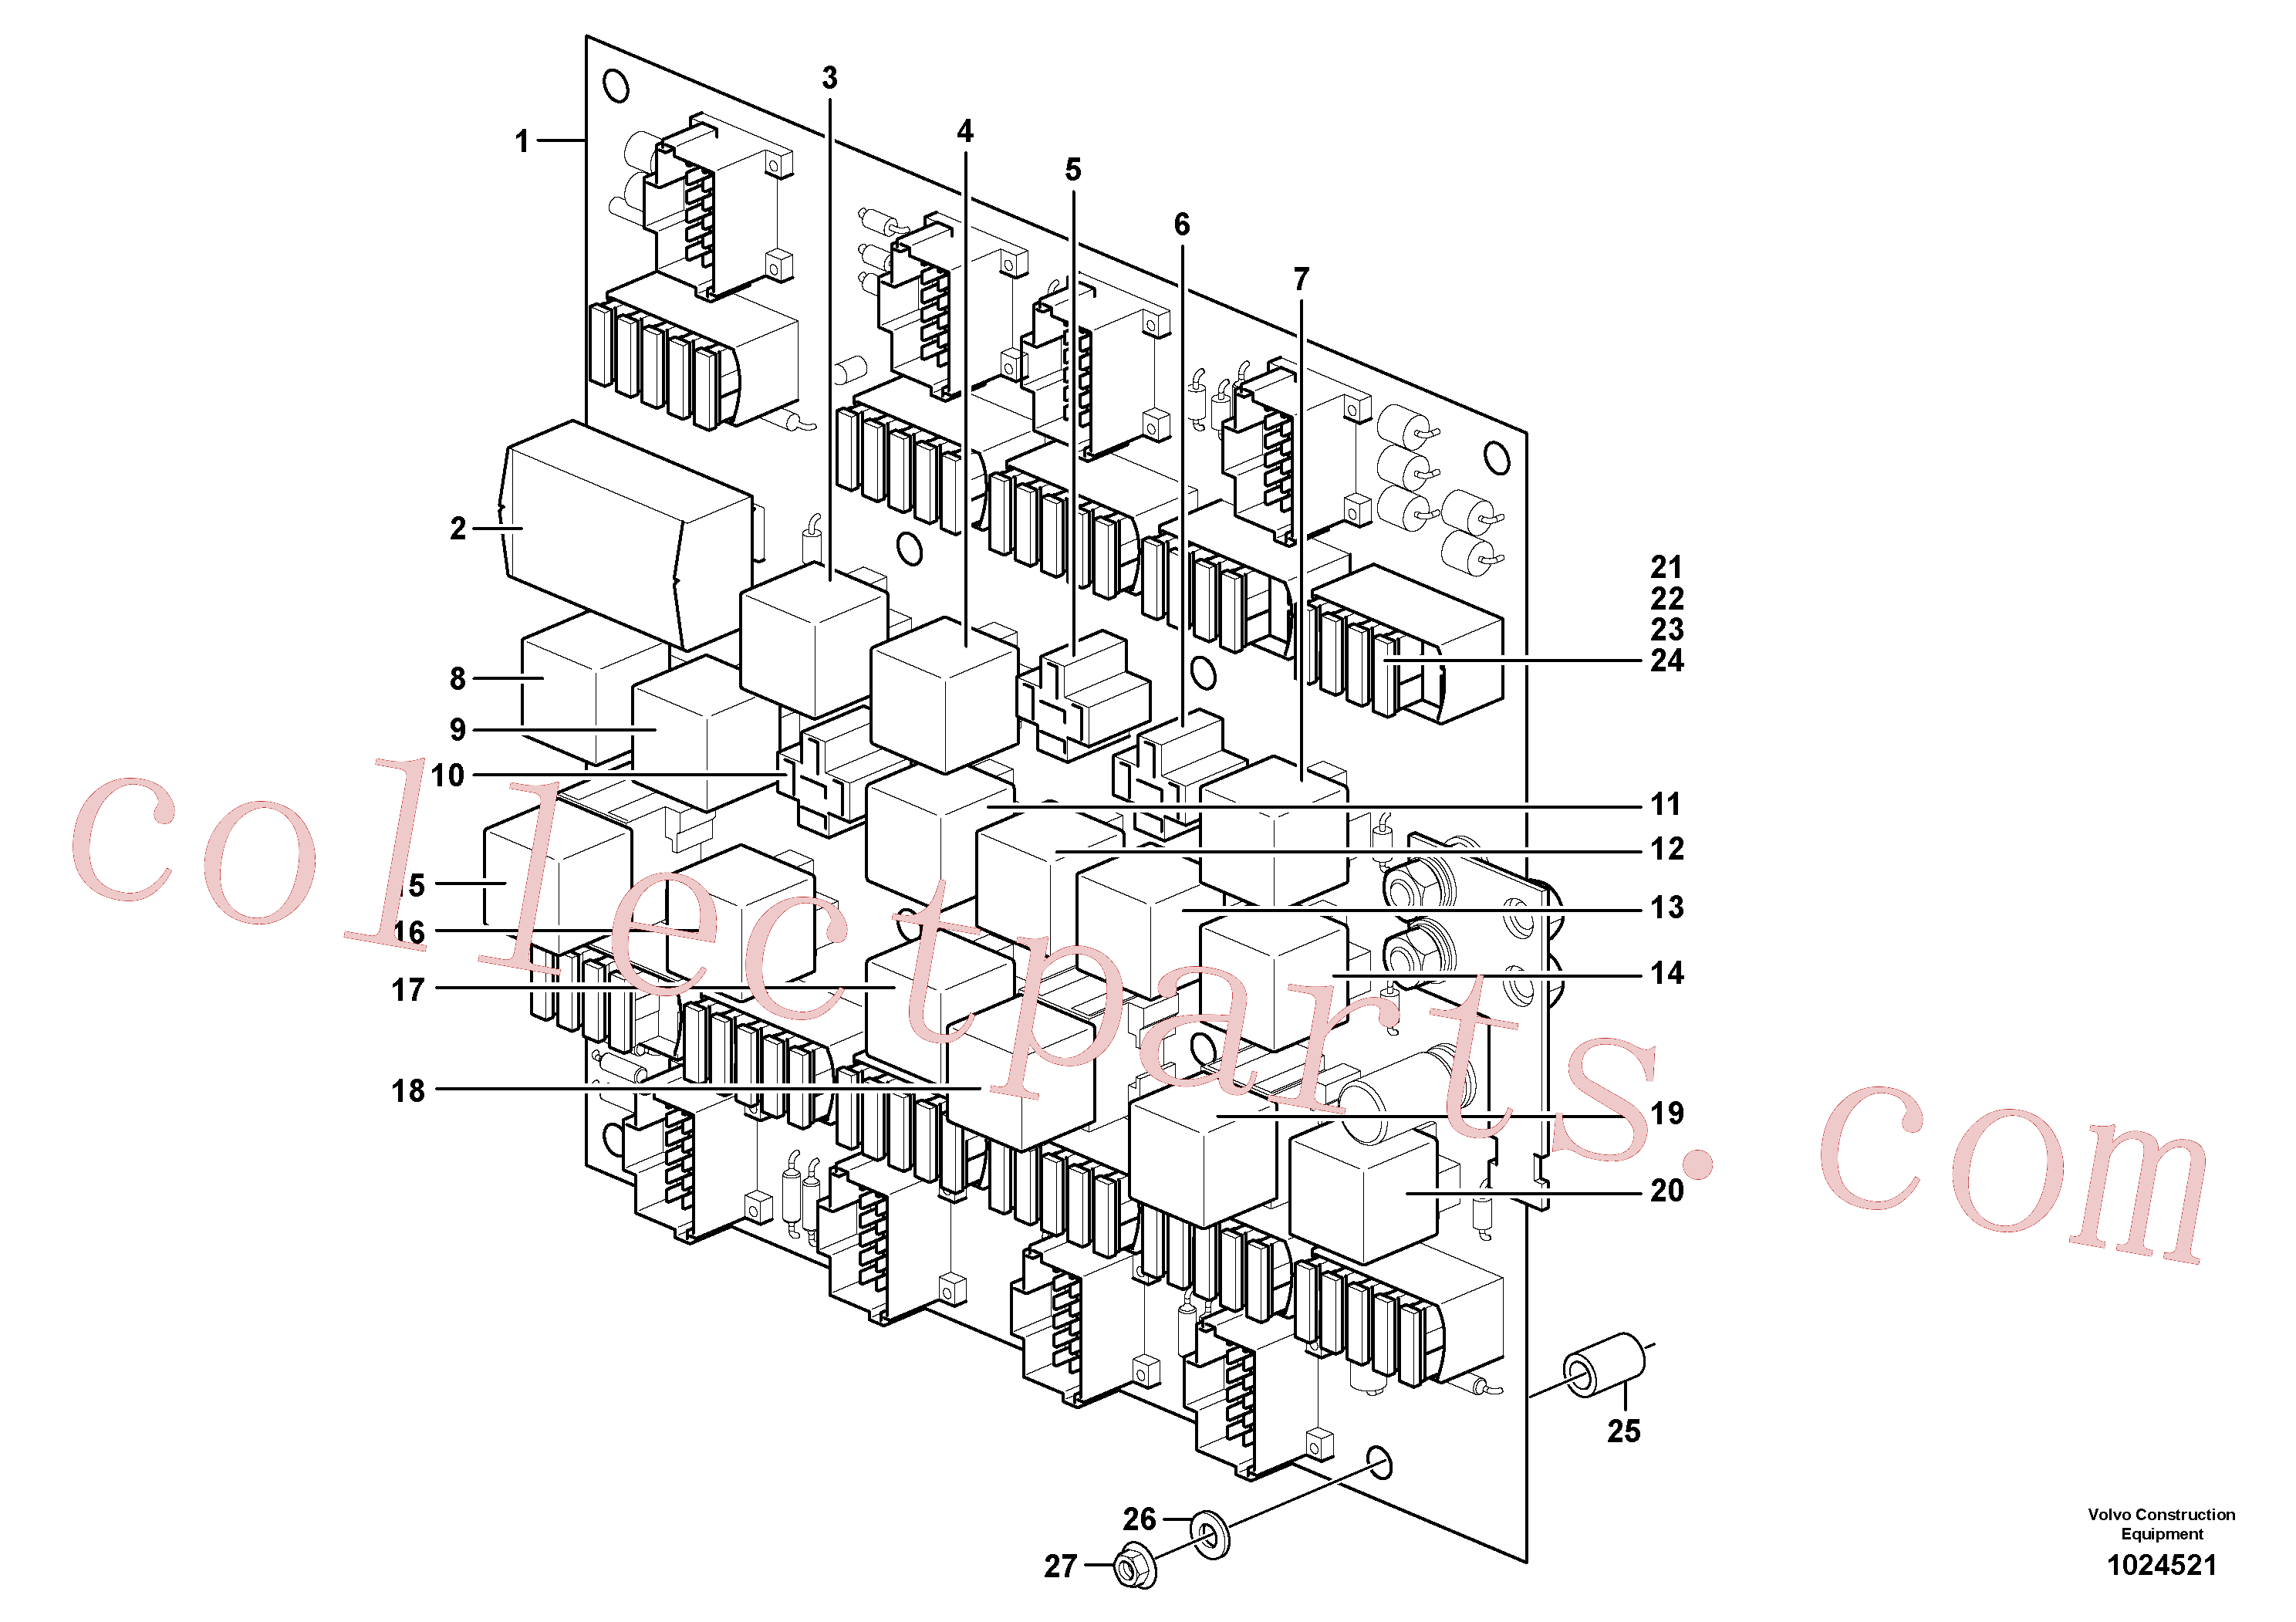 VOE969162 for Volvo Circuit board(1024521 assembly)